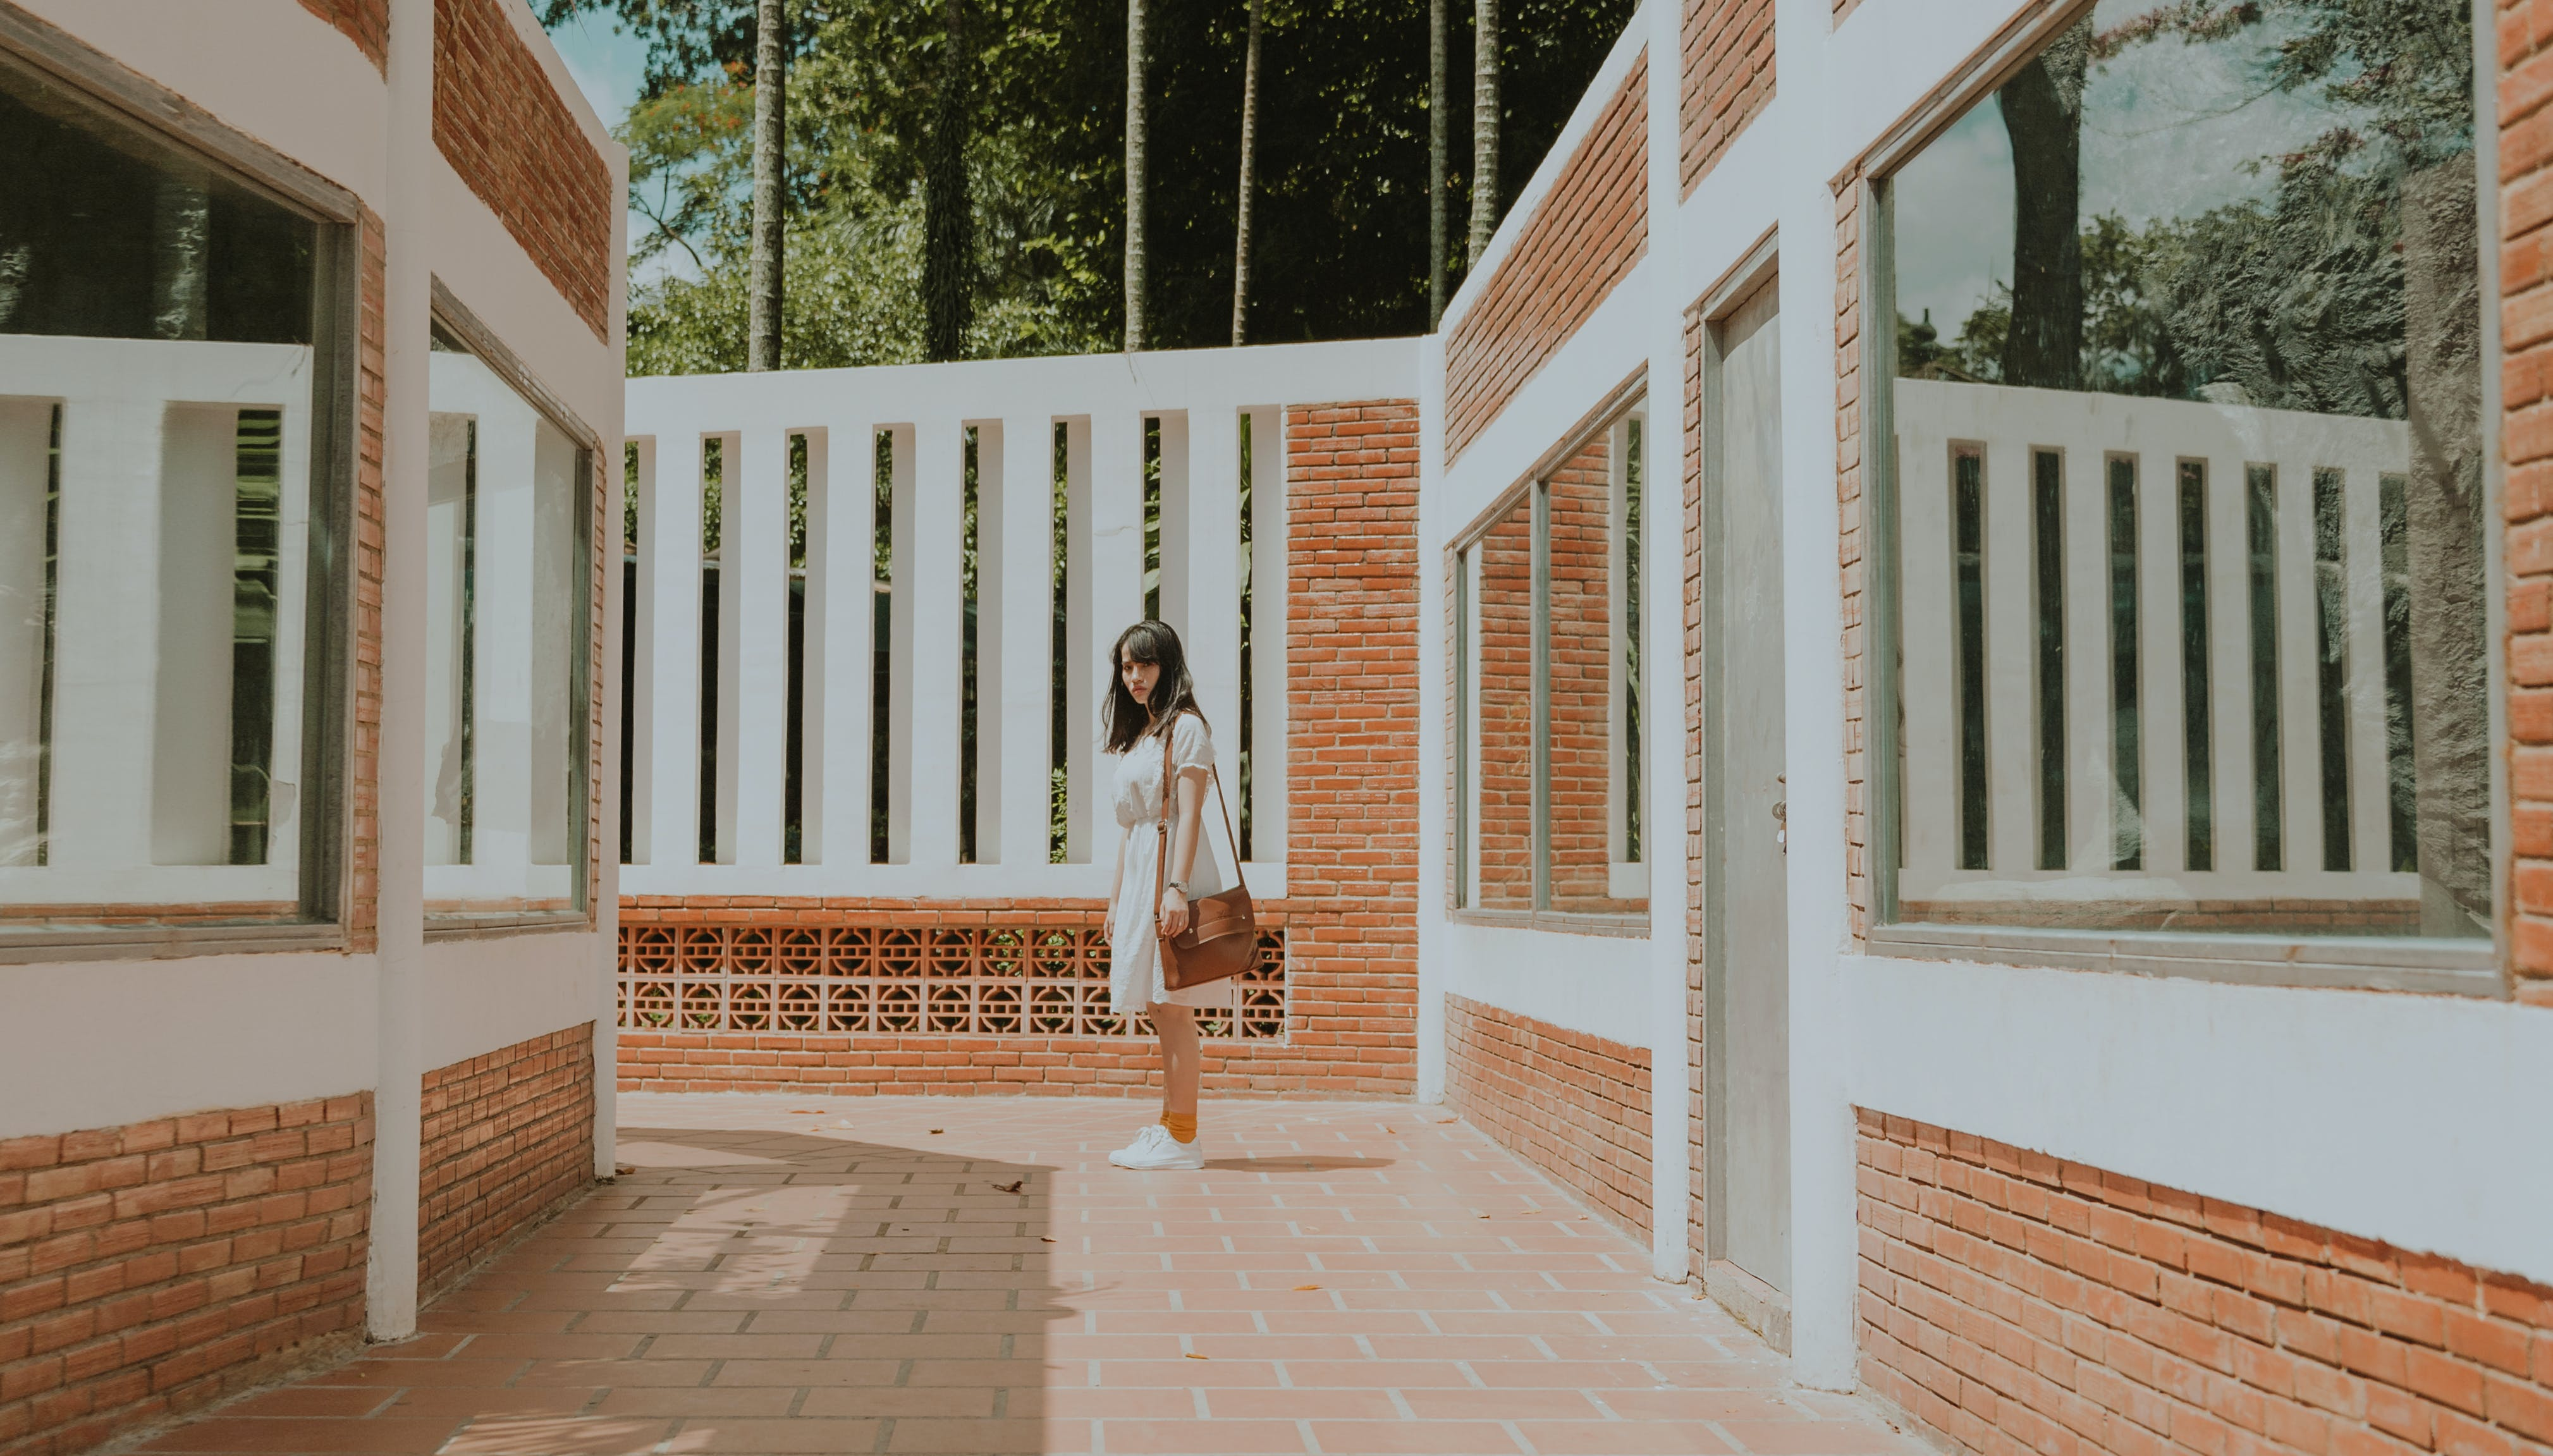 Woman Standing in the Middle of Brick Wall House